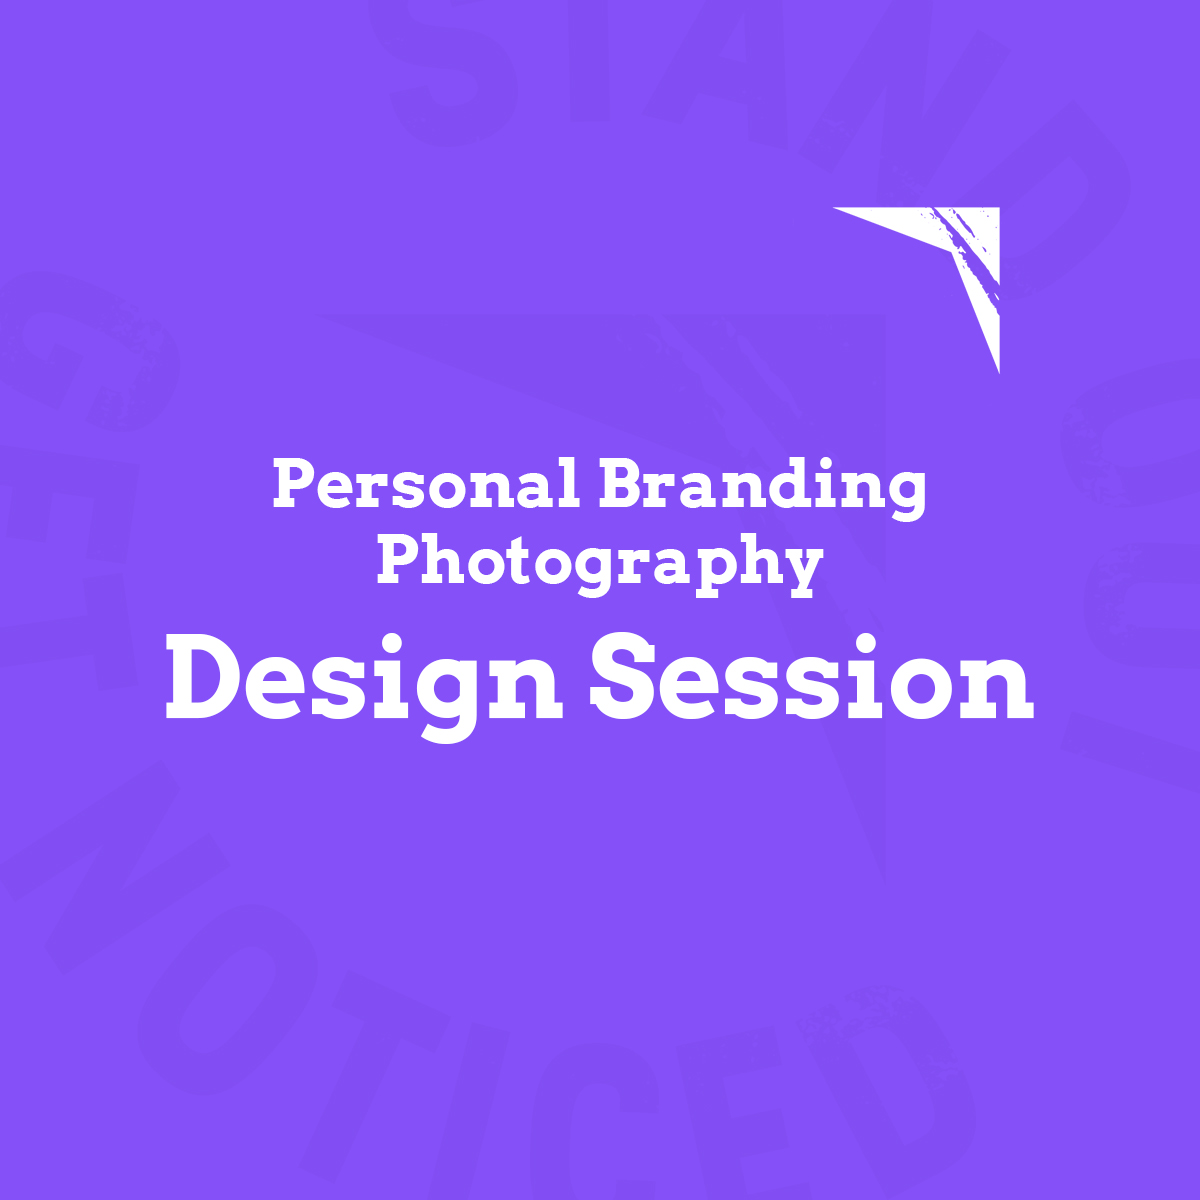 Personal Branding Photography - design session